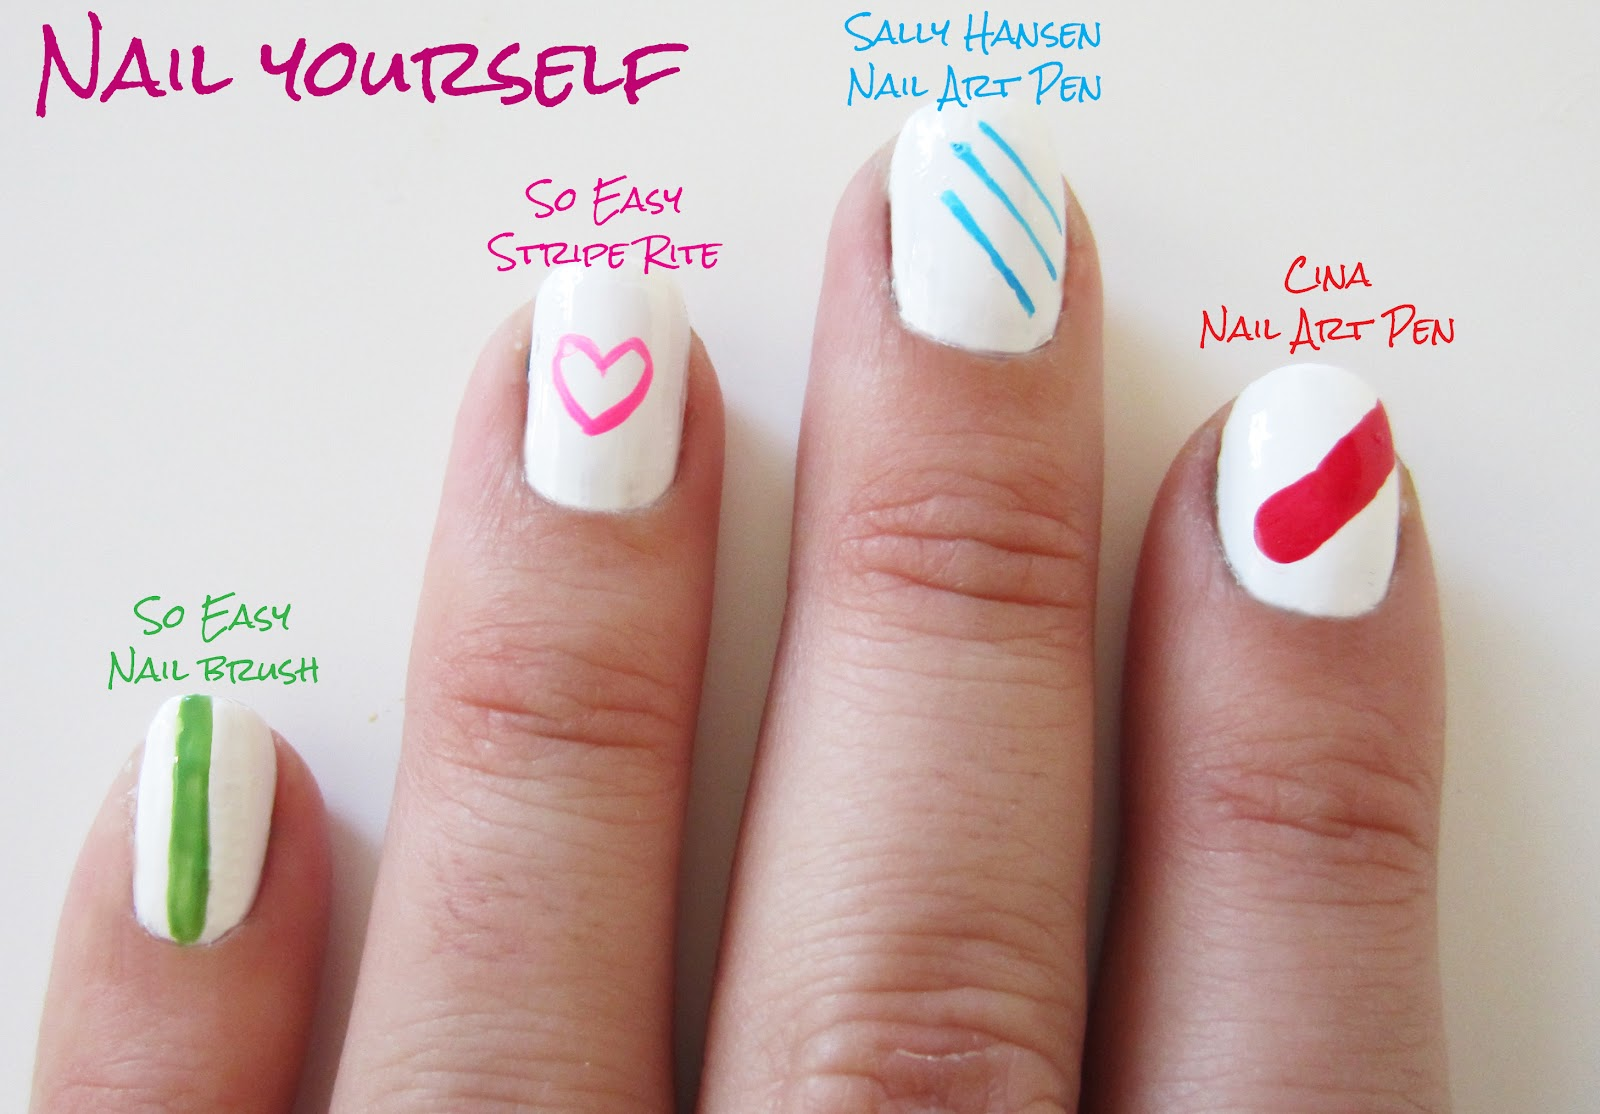 Nail Yourself Critique Nail Art Tools